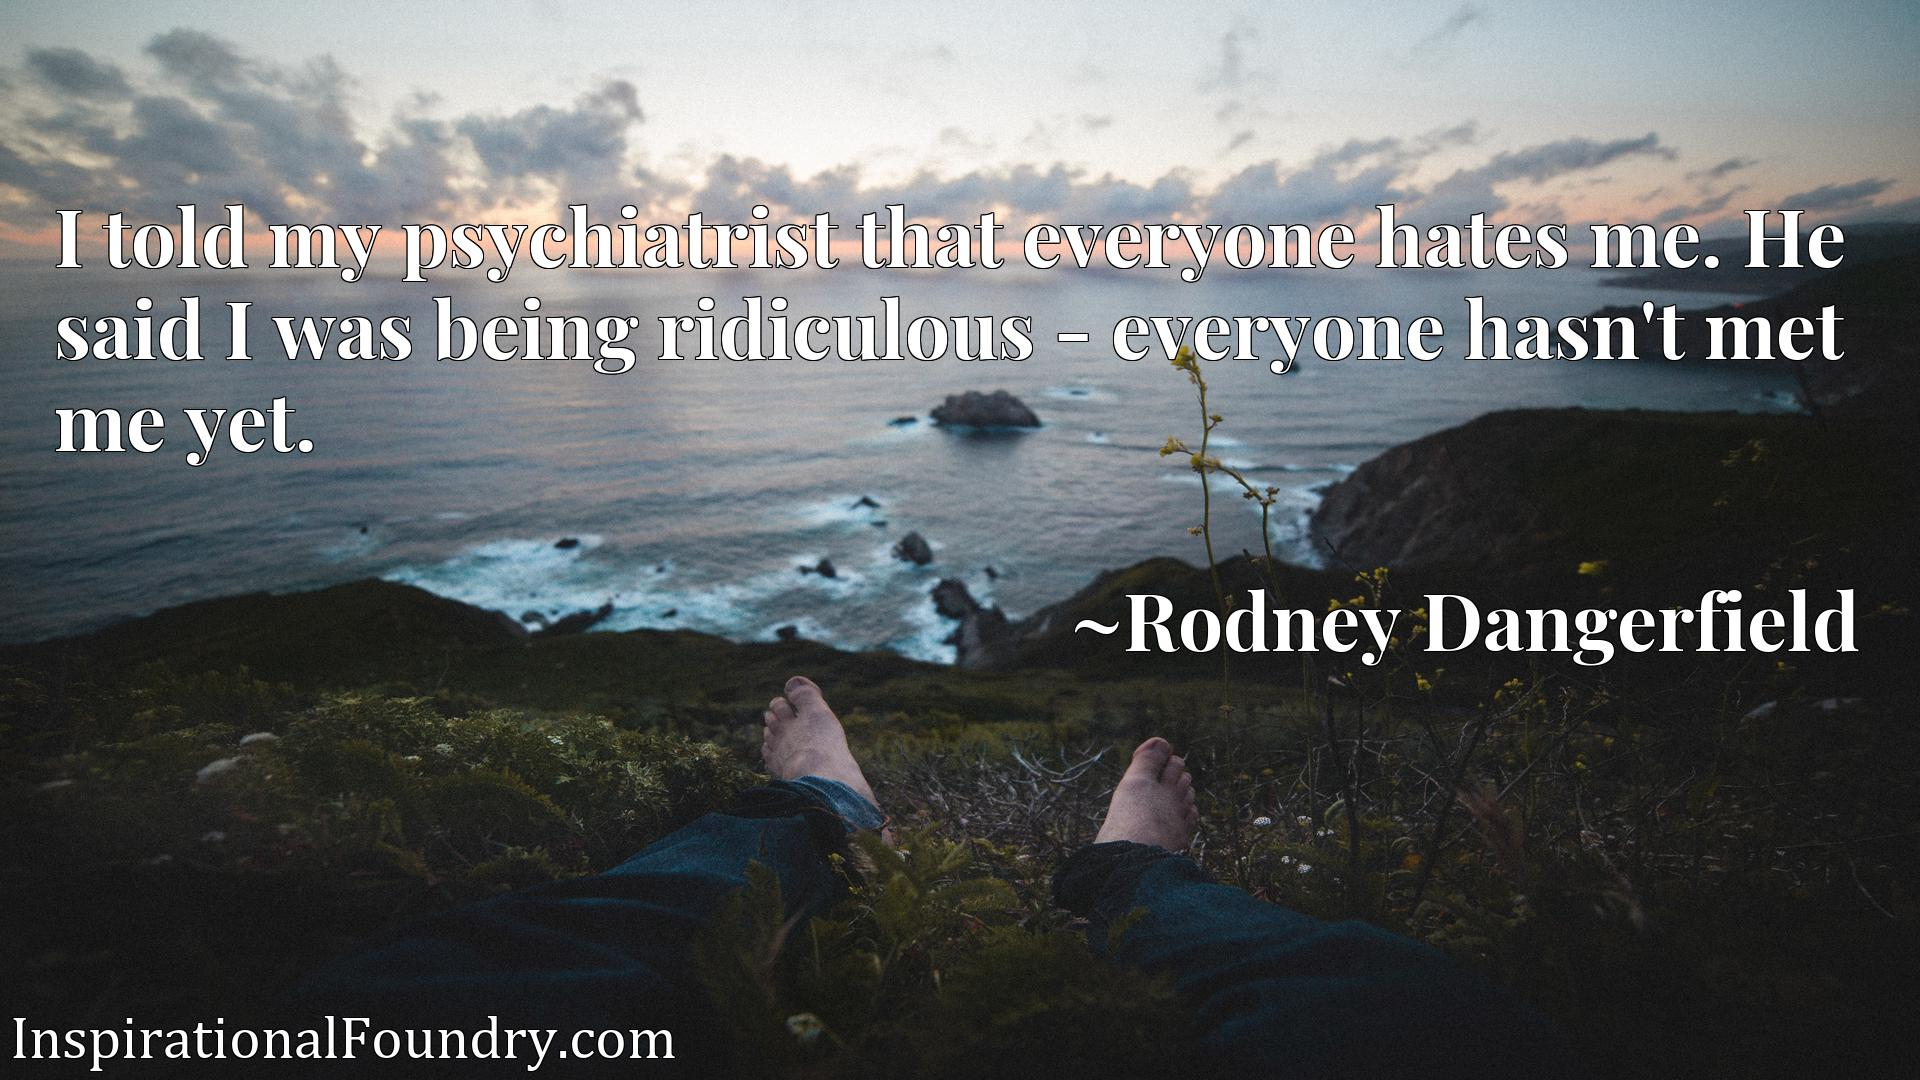 I told my psychiatrist that everyone hates me. He said I was being ridiculous - everyone hasn't met me yet.